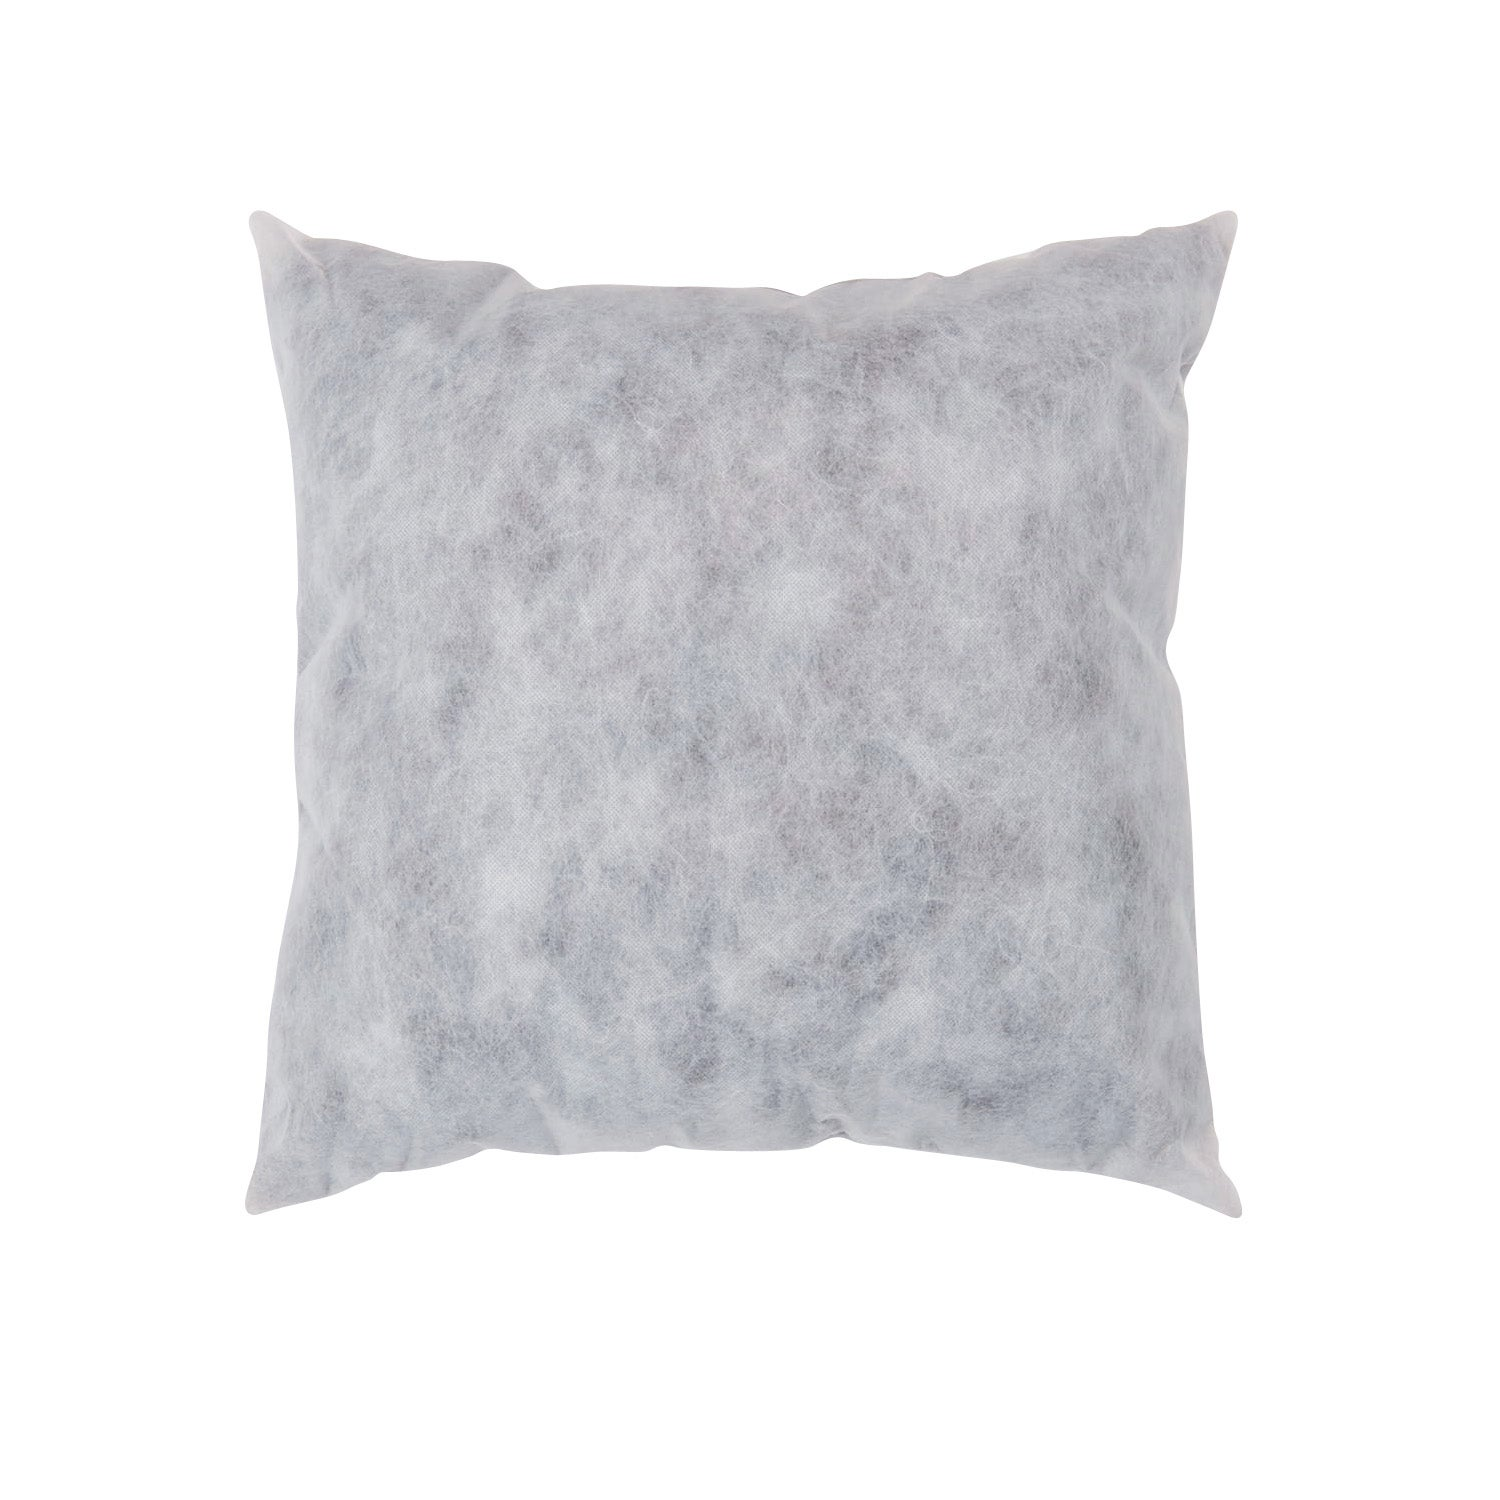 Pillow Perfect 18-inch Non-Woven Polyester Pillow Insert